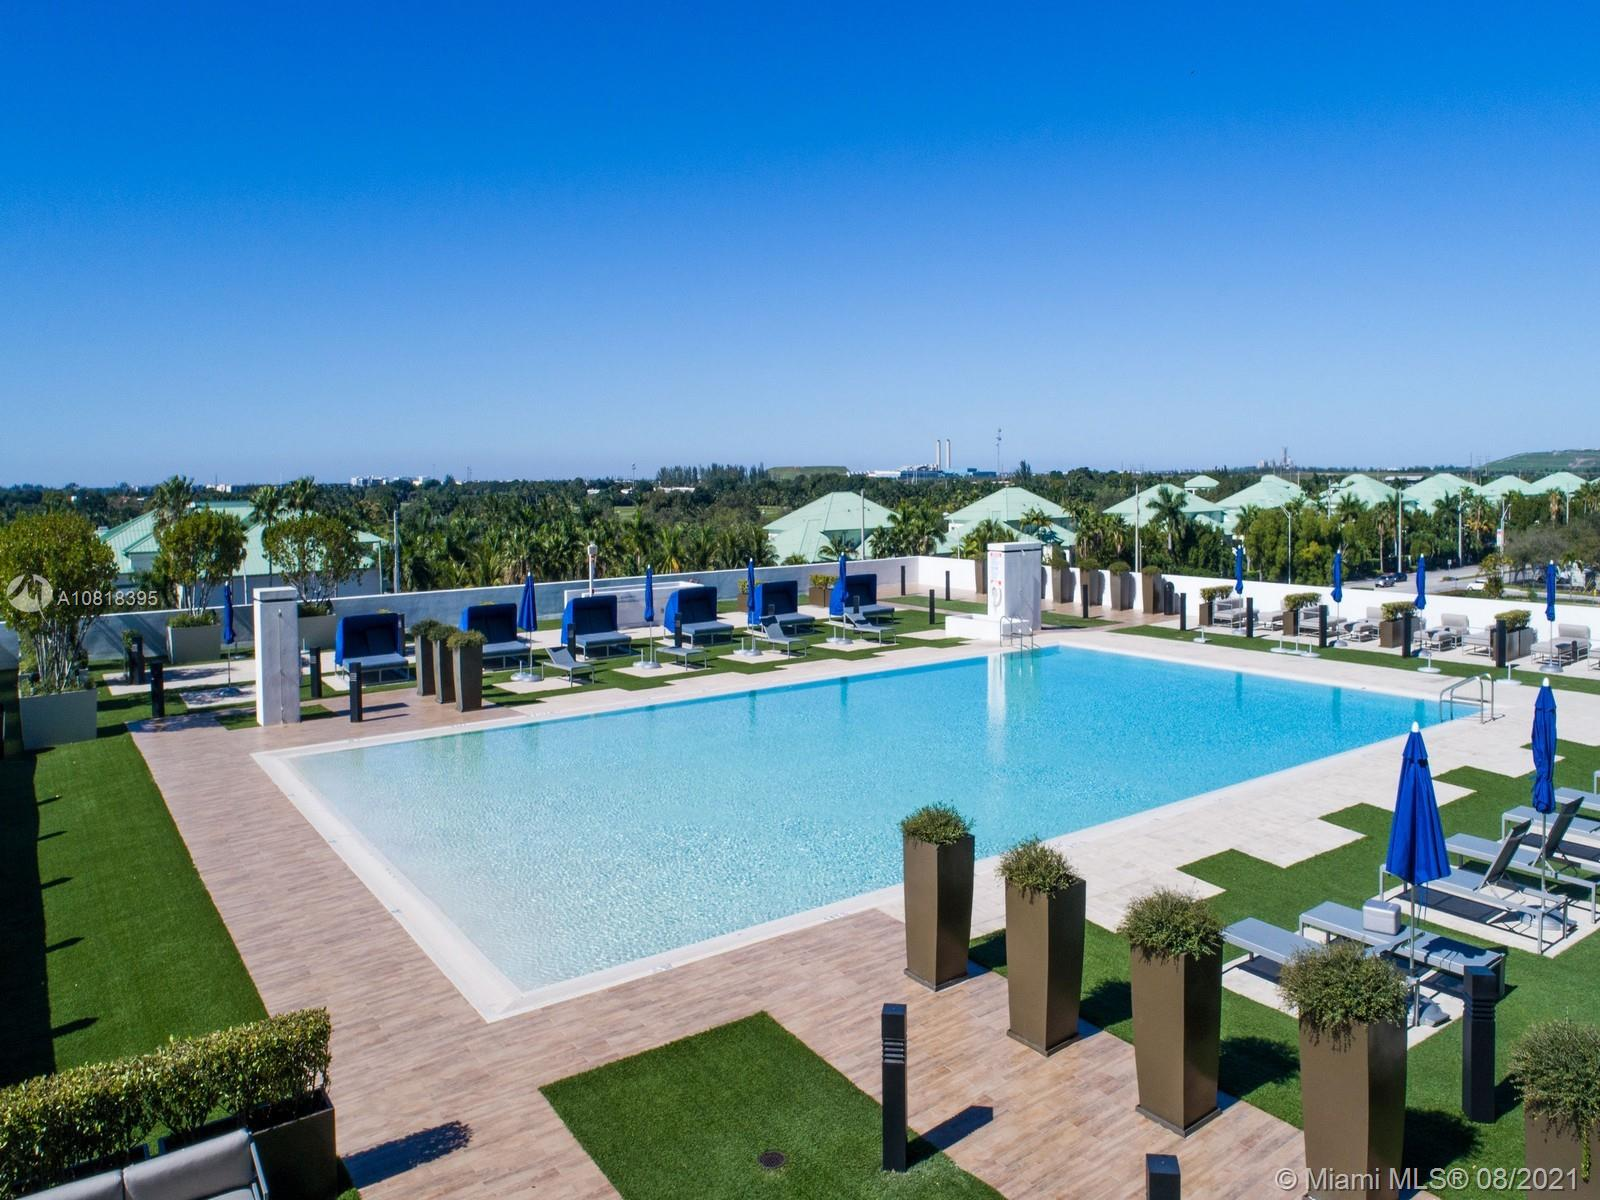 High rise luxury Penthouse 2 bedrooms 2 bathrooms in the heart of Downtown Doral, panoramic view of the city, modern kitchen with quartz counter tops, stainless steel appliances, porcelain floors, impact windows and doors, blinds, 2 assigned parking spaces, valet parking, storage room, 24 hours security, attendance lobby, great amenities; infinity pool, sauna, massage room, exercise room, children play room, business meeting room, entertainment room with a pool table. Walking distance to fine restaurants, shops, Publix and A+ schools. Close to Mayor Highways, Miami International Airport and the Beach. Water, basic cable and basic internet is included in the association fees